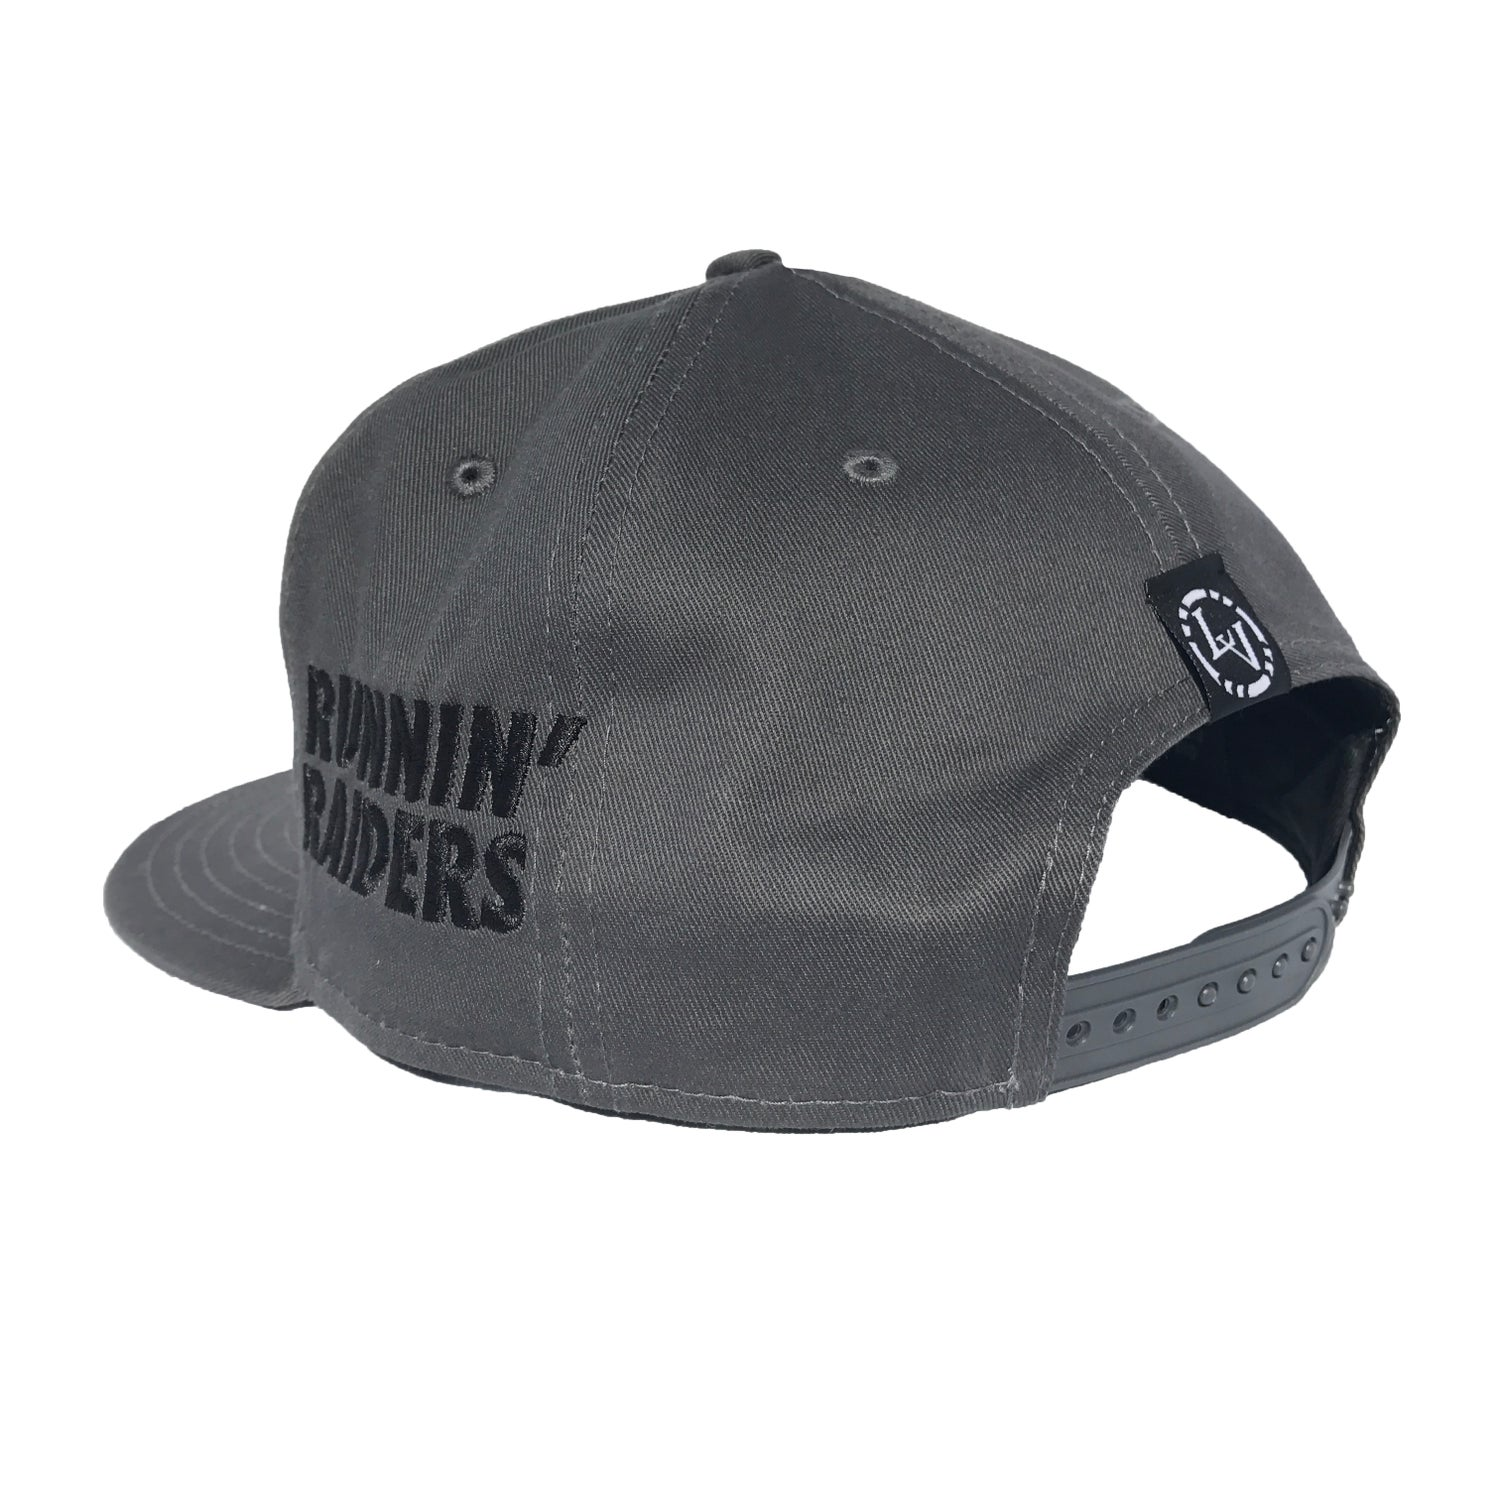 Image of Runnin' Raiders 1st Rounders Snapback - GRY/BLK